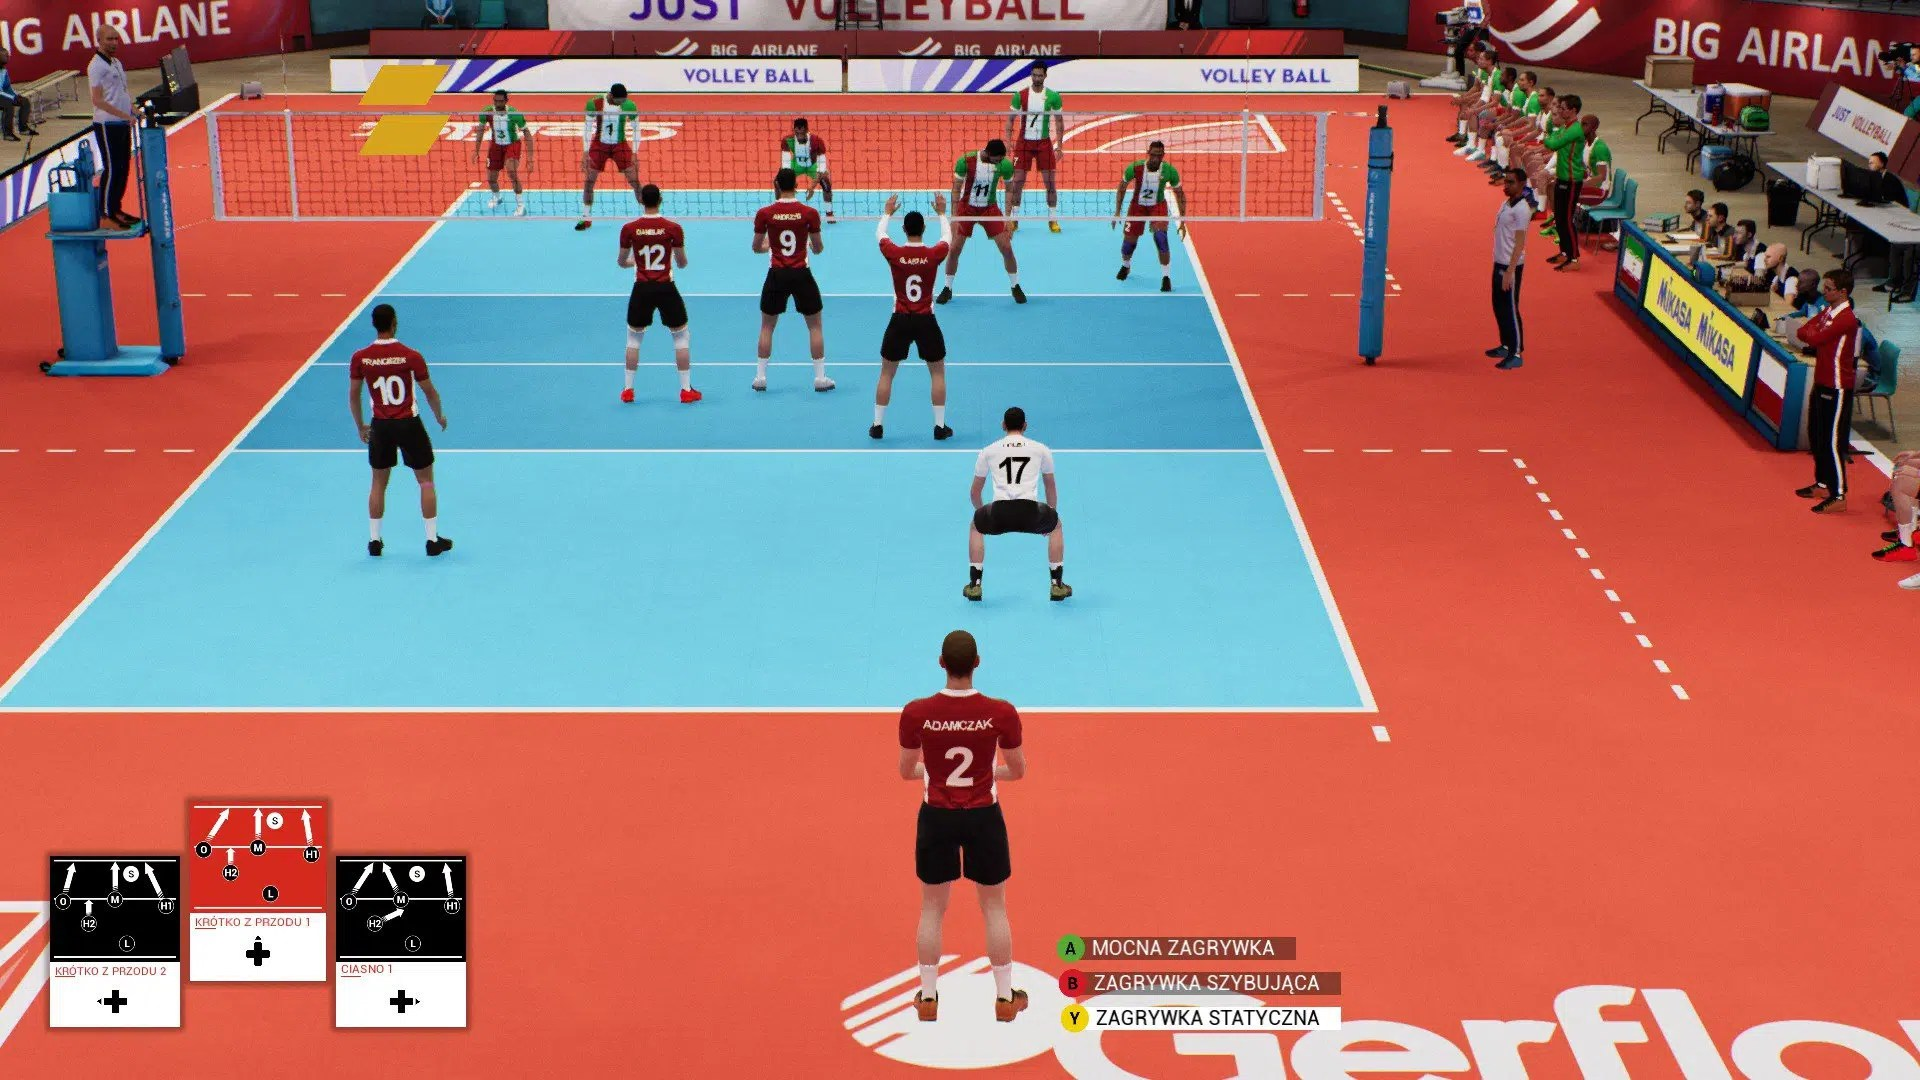 Spike Volleyball Screen (4)